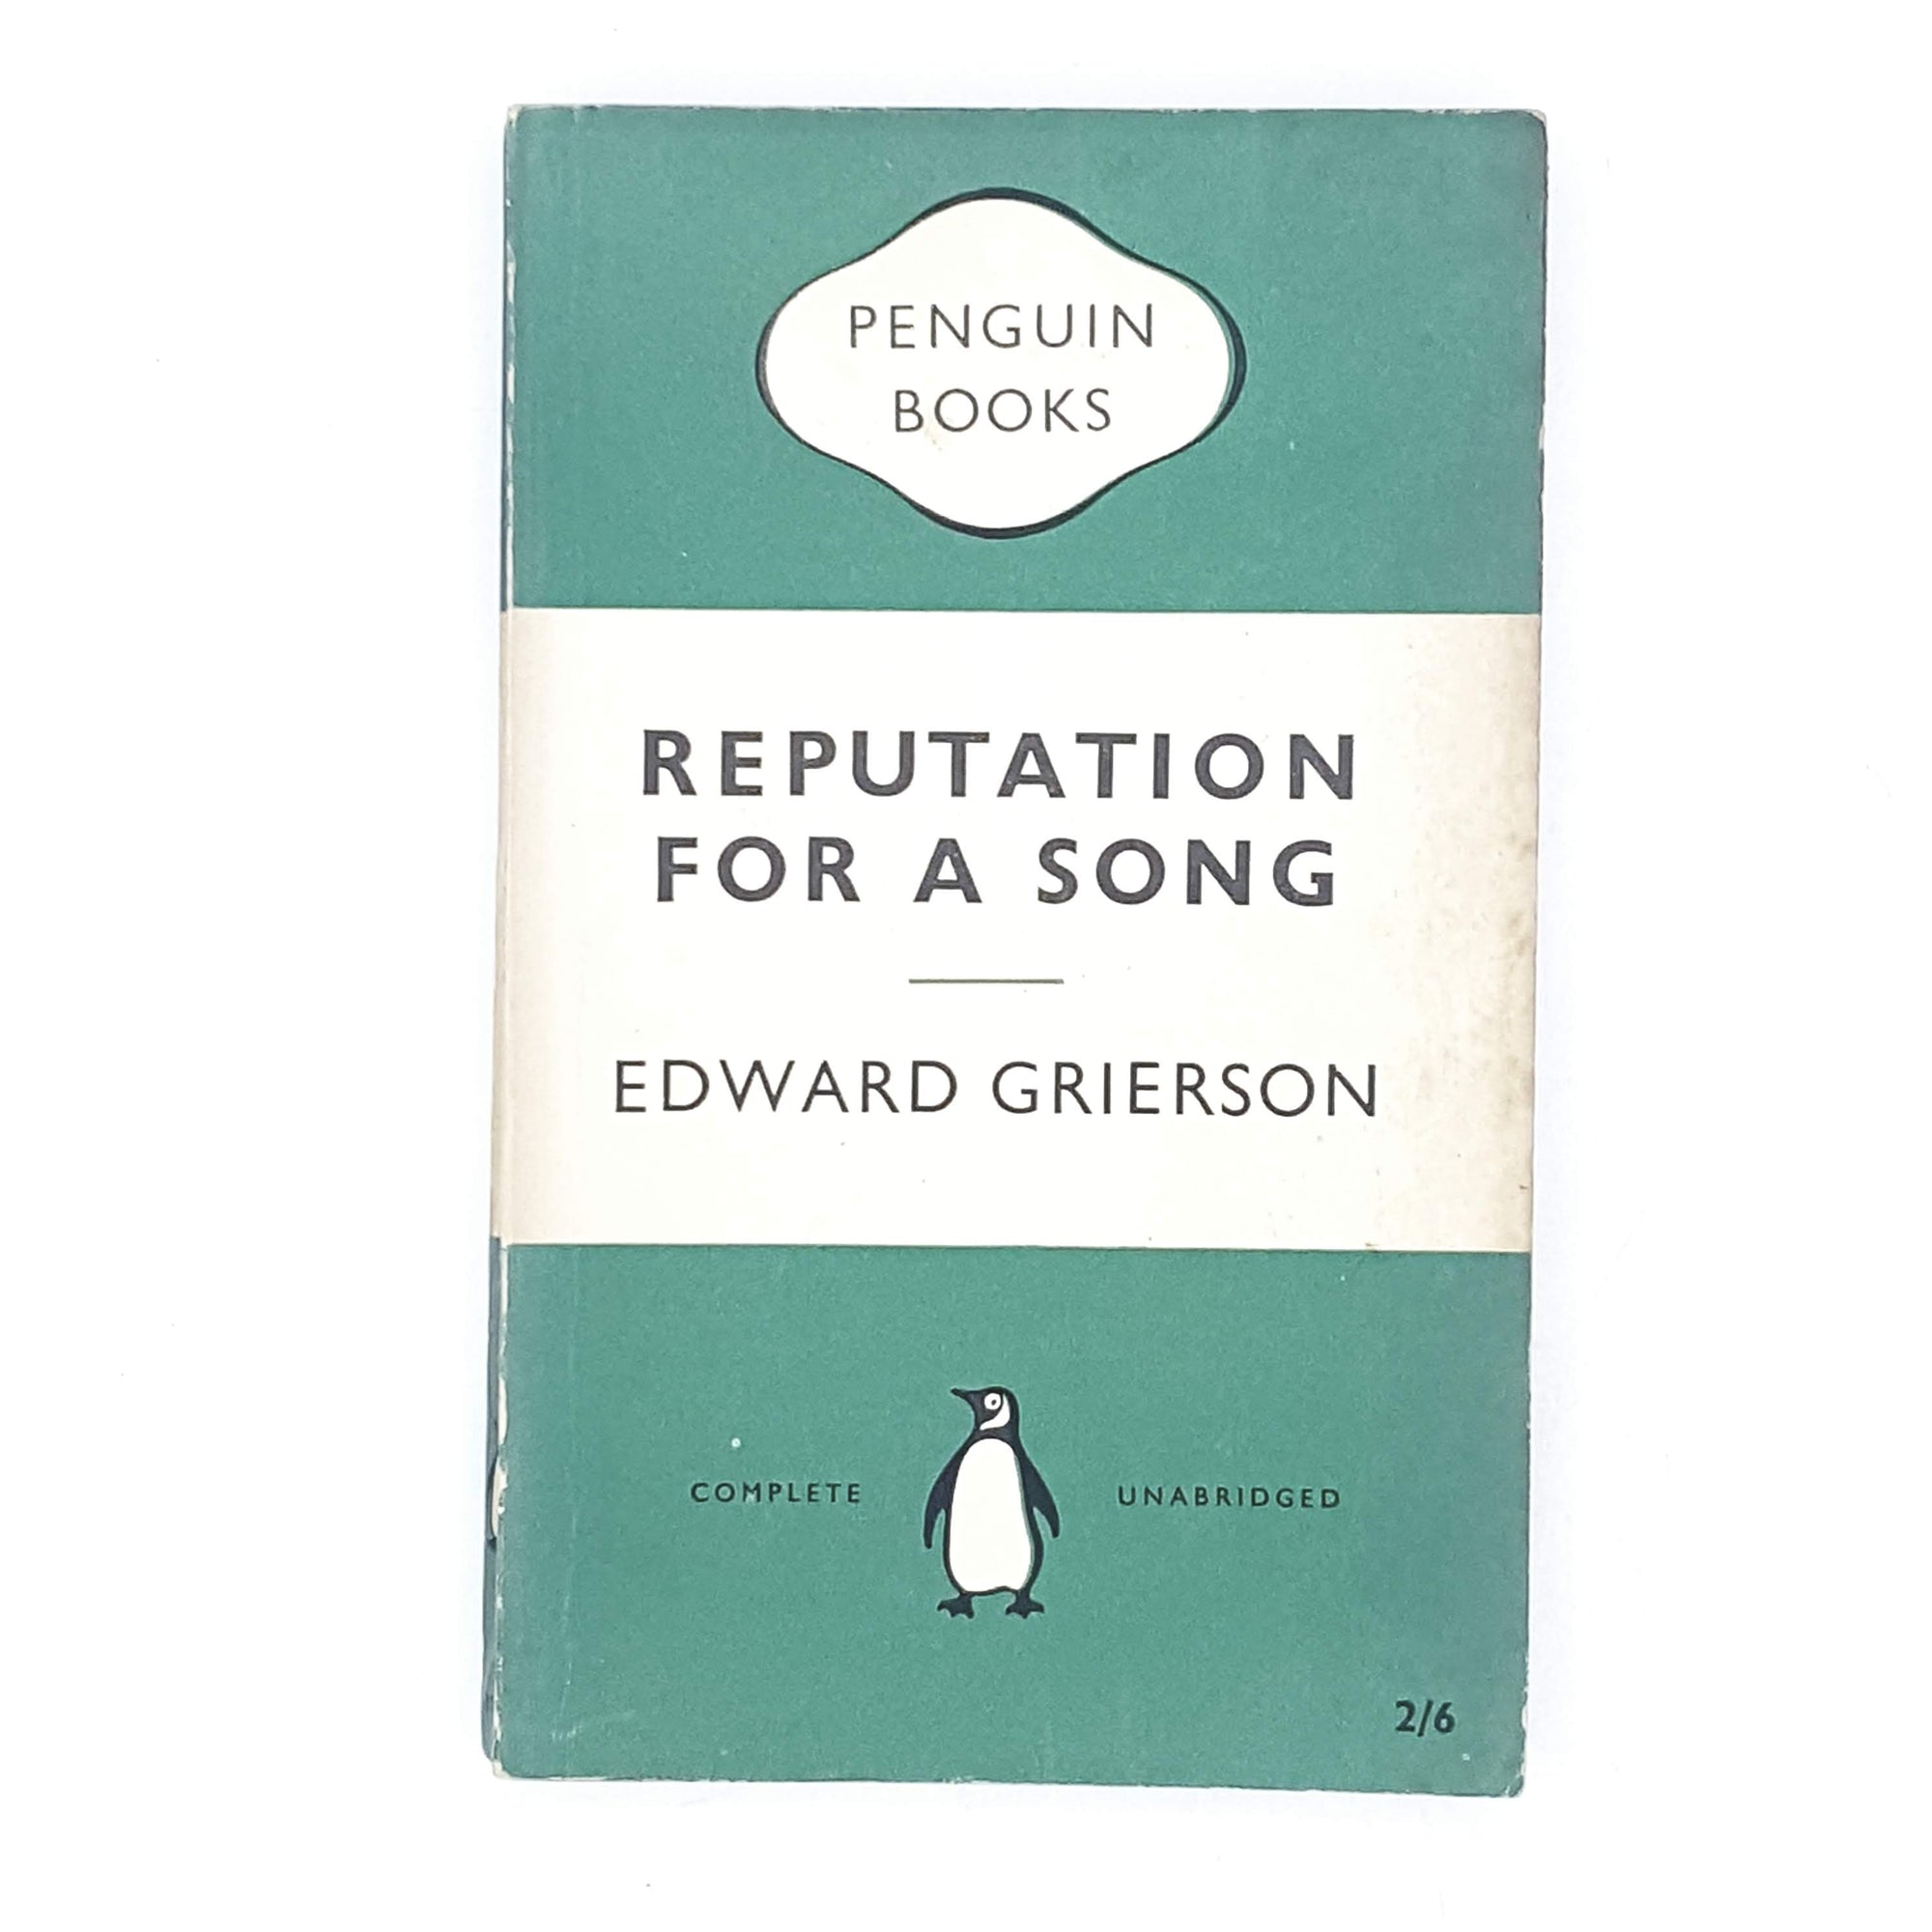 Reputation For a Song by Edward Grierson 1955